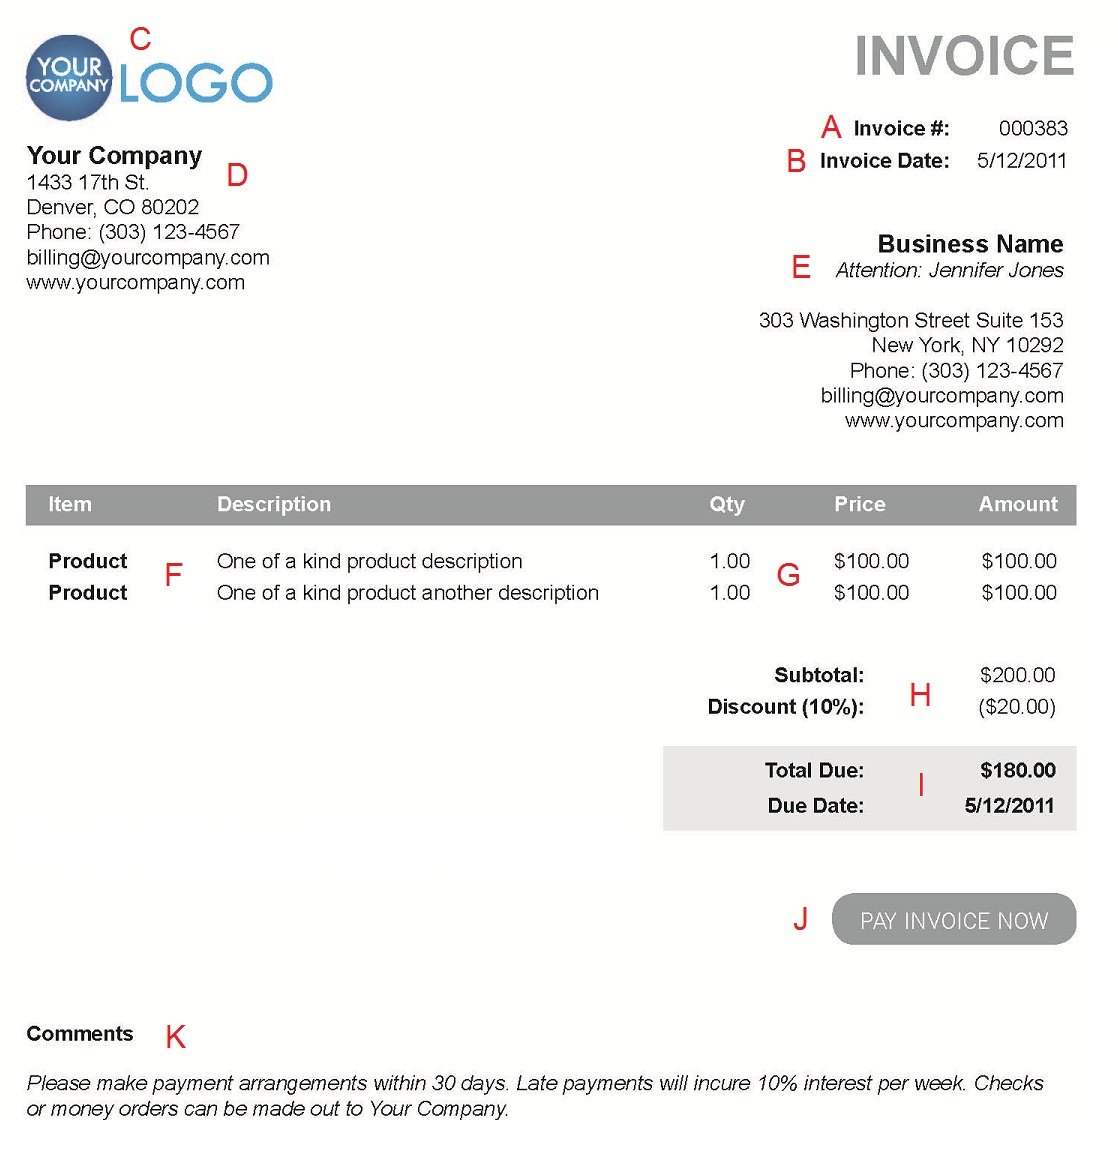 Reliefworkersus  Marvelous The  Different Sections Of An Electronic Payment Invoice With Magnificent A  With Appealing Simple Invoicing Also Invoice Template Quickbooks In Addition Invoice Terms Net  And Word Templates Invoice As Well As Invoice Price New Car Additionally Sample Invoice Templates From Paysimplecom With Reliefworkersus  Magnificent The  Different Sections Of An Electronic Payment Invoice With Appealing A  And Marvelous Simple Invoicing Also Invoice Template Quickbooks In Addition Invoice Terms Net  From Paysimplecom